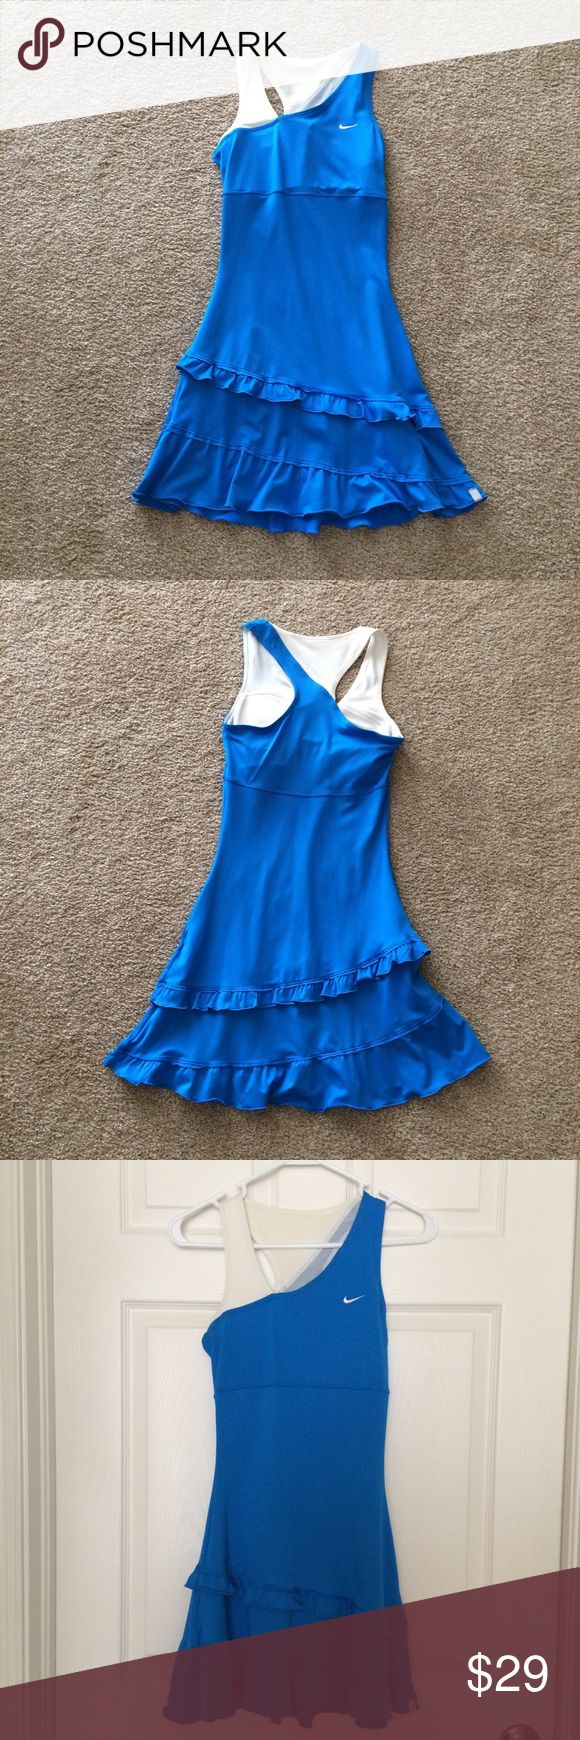 Nike Tennis Dress Nike Dri-Fit Tennis Dress - Super Cute! Great condition from a smoke-free home Nike Dresses Mini